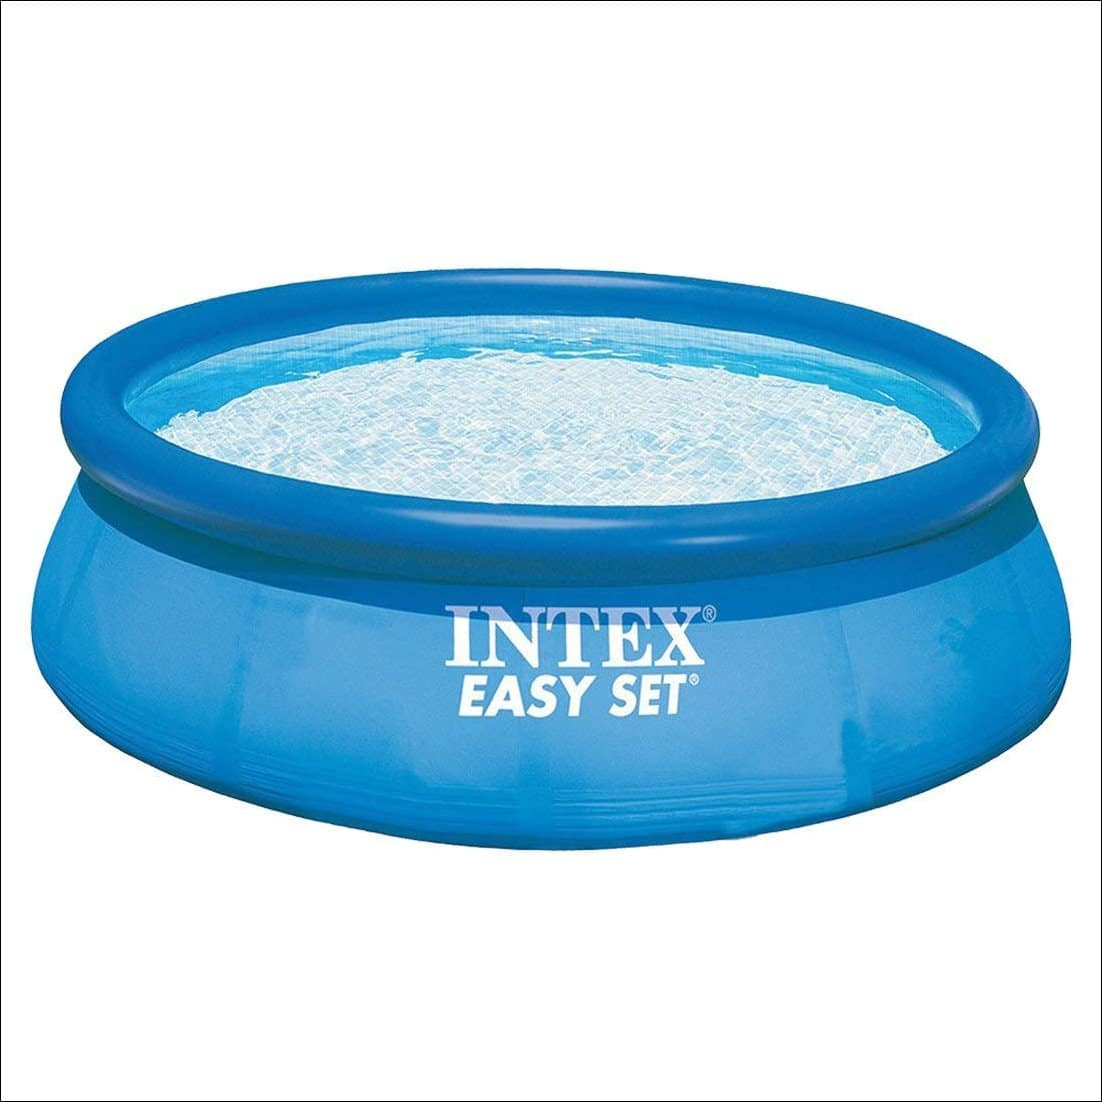 Intex Swimming Pool- Easy Set review